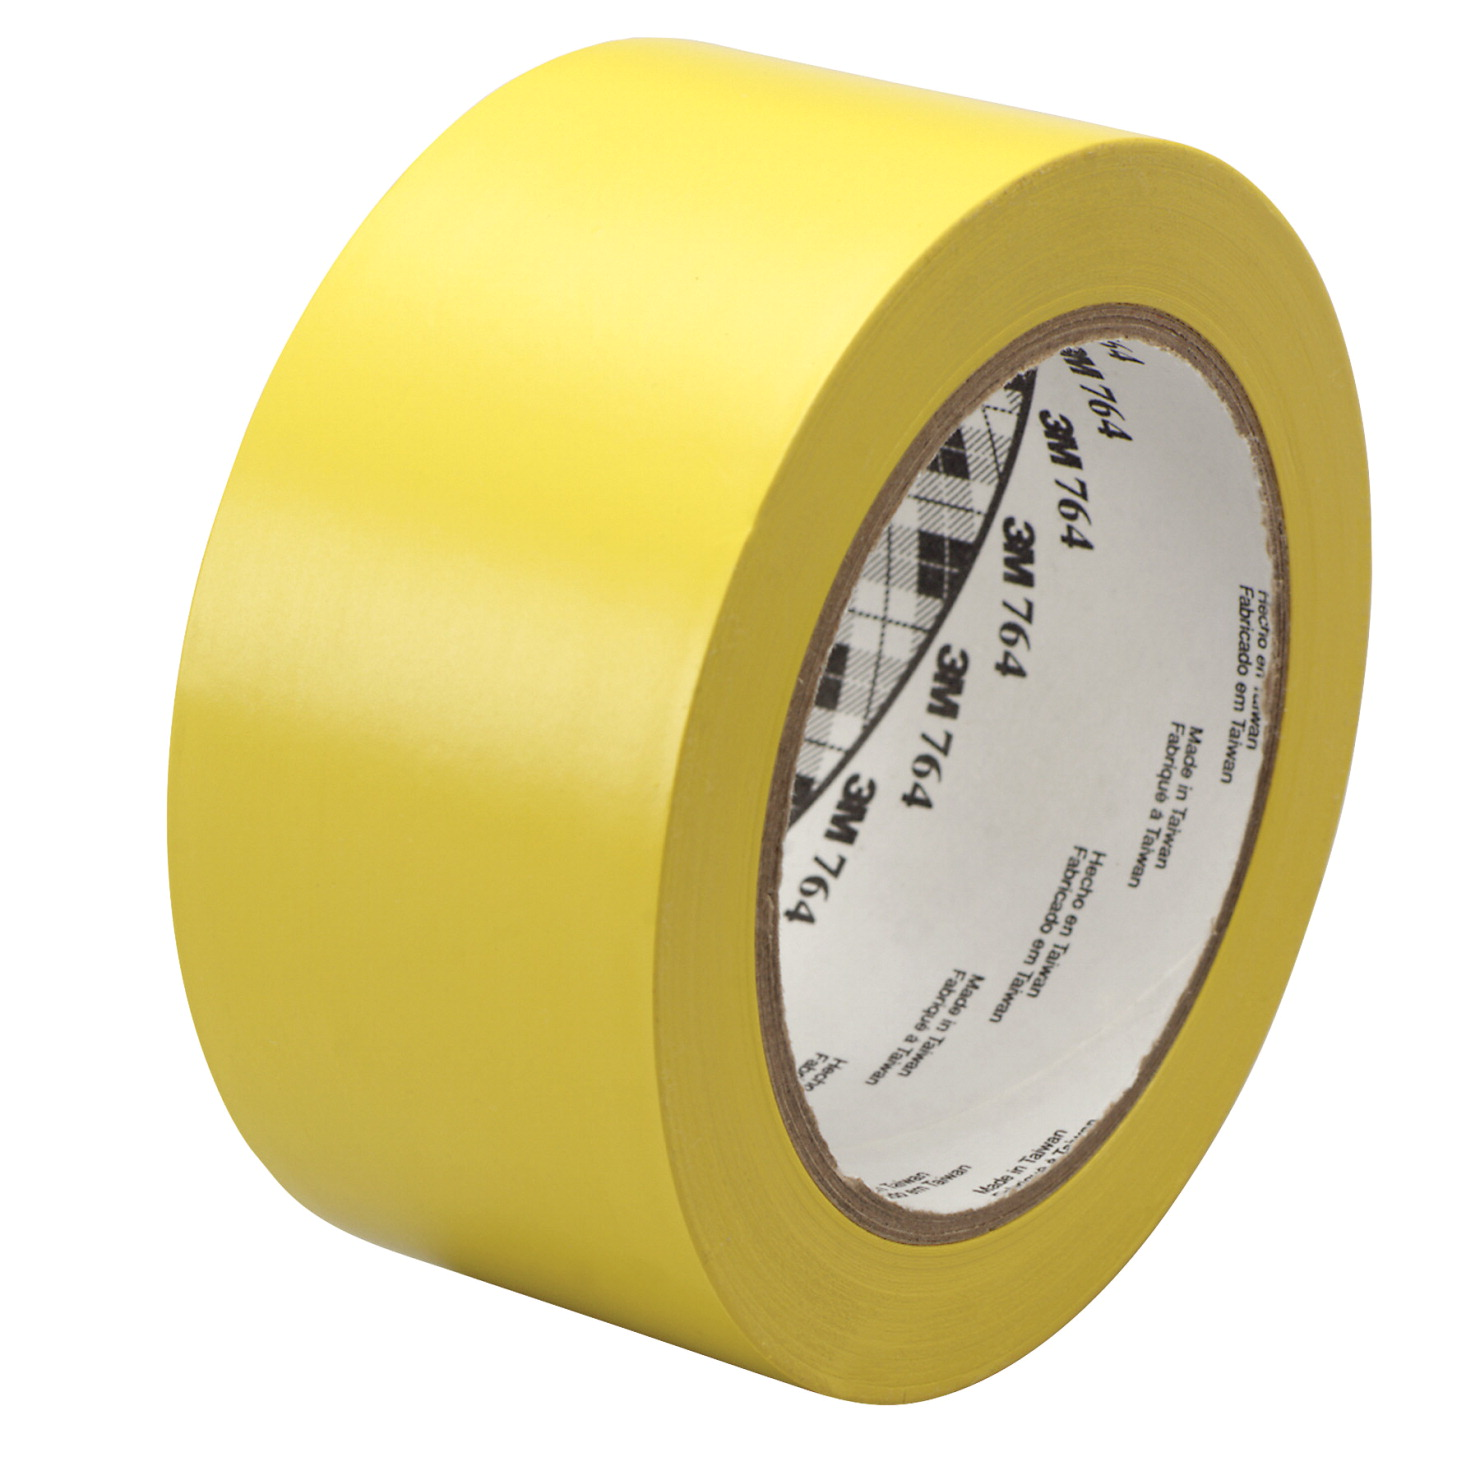 3M General Purpose Wear Resistant Floor Marking Tape Roll, 1 Inch x 36 Yards, Yellow, Vinyl